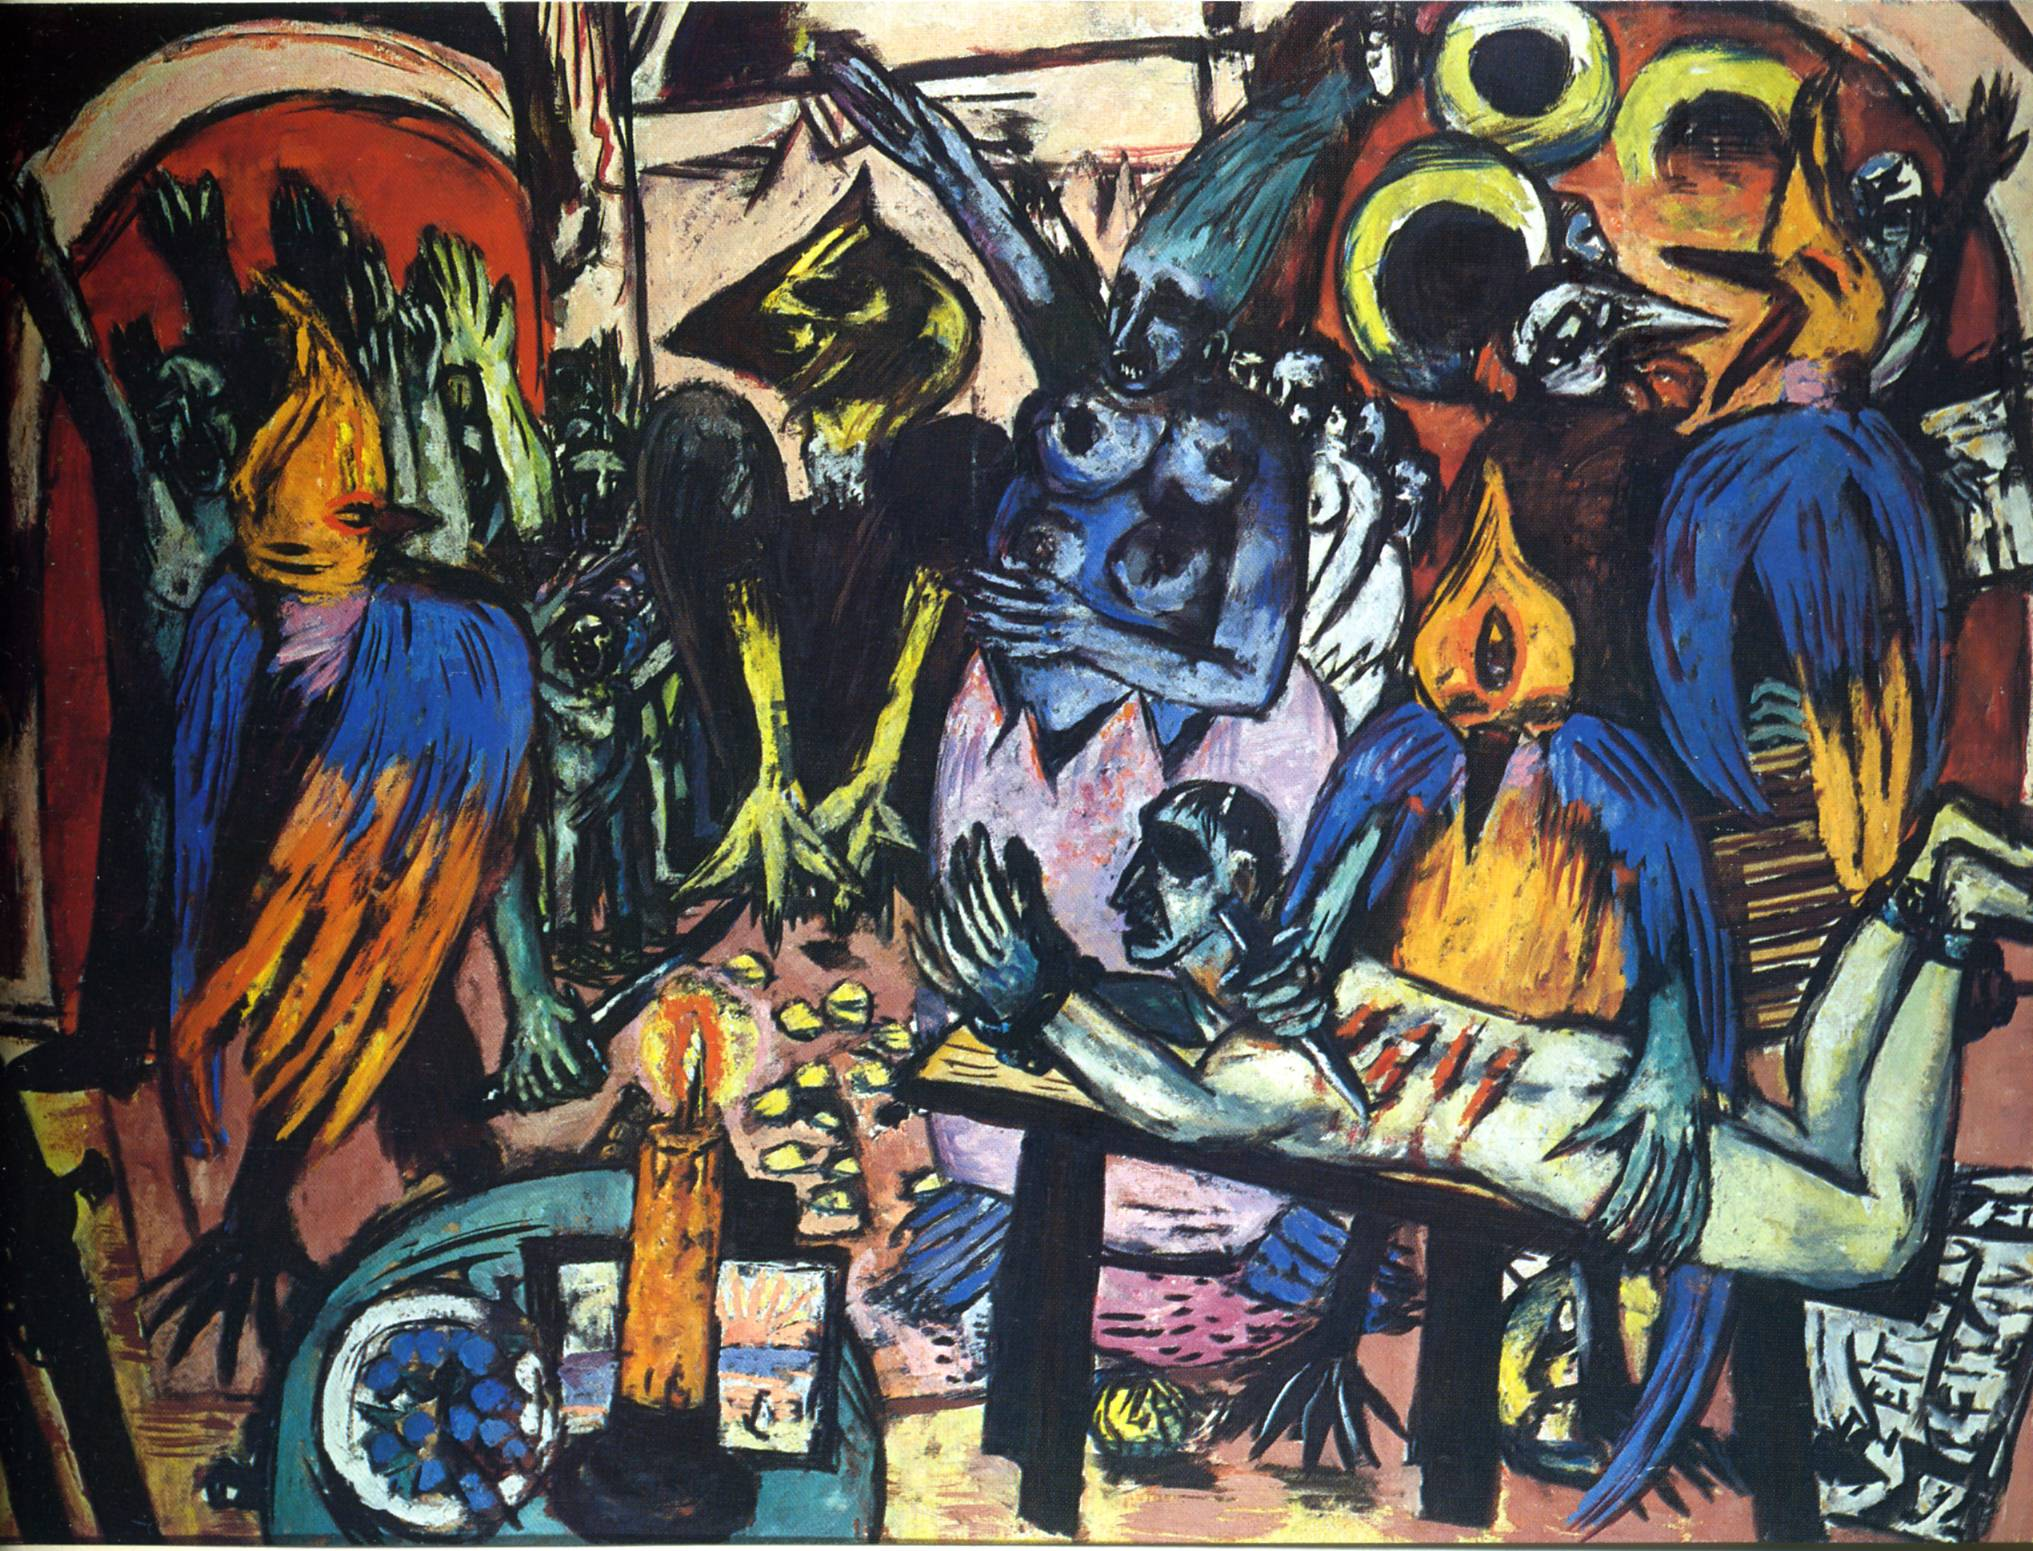 bird 39 s hell max beckmann encyclopedia of visual arts. Black Bedroom Furniture Sets. Home Design Ideas